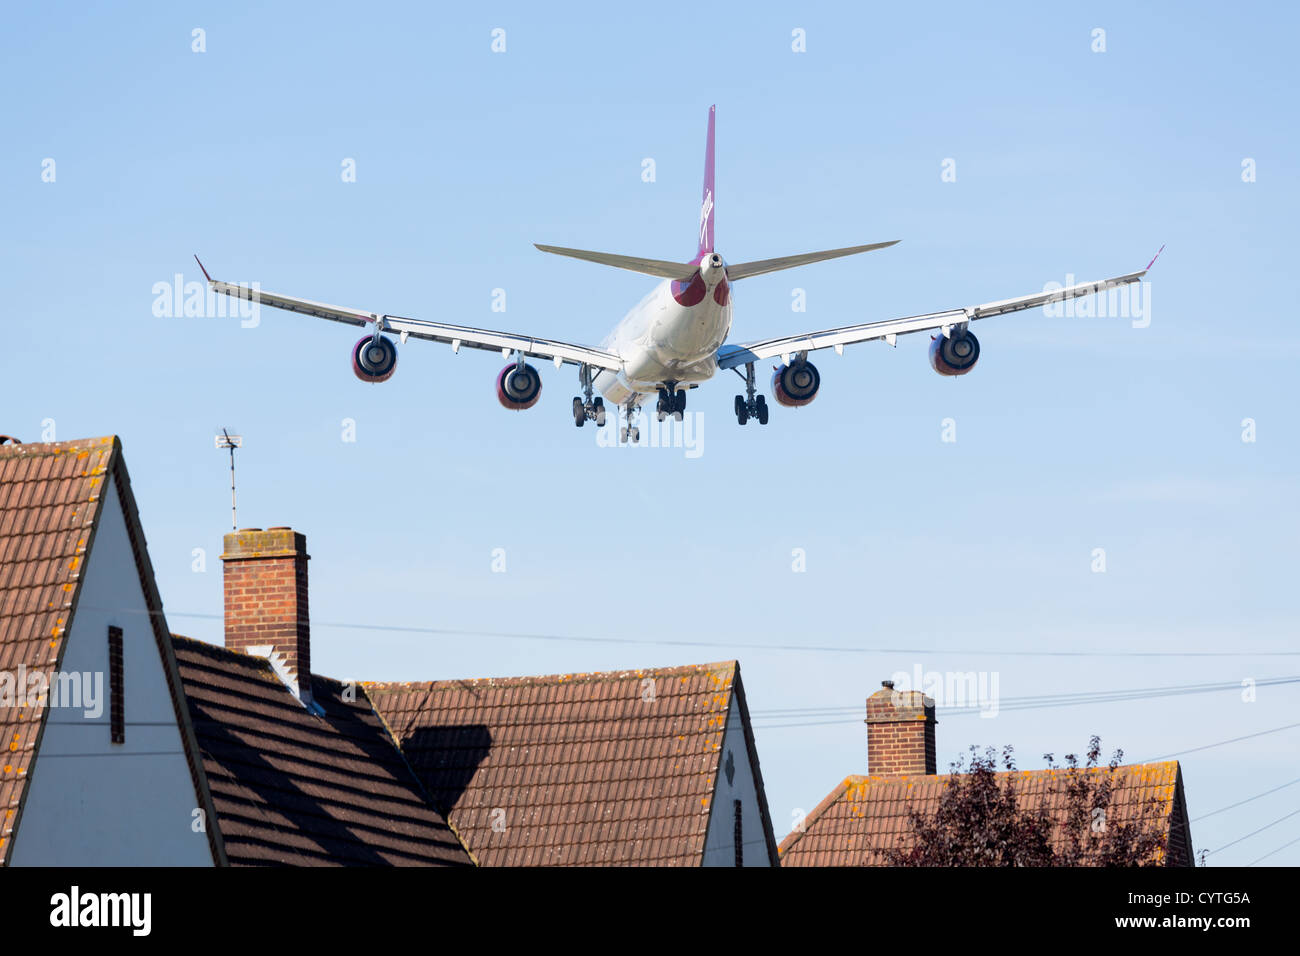 VIrgin Atlantic A340 approaches Heathrow on 9 September 2012. London Heathrow is the third busiest airport in the - Stock Image